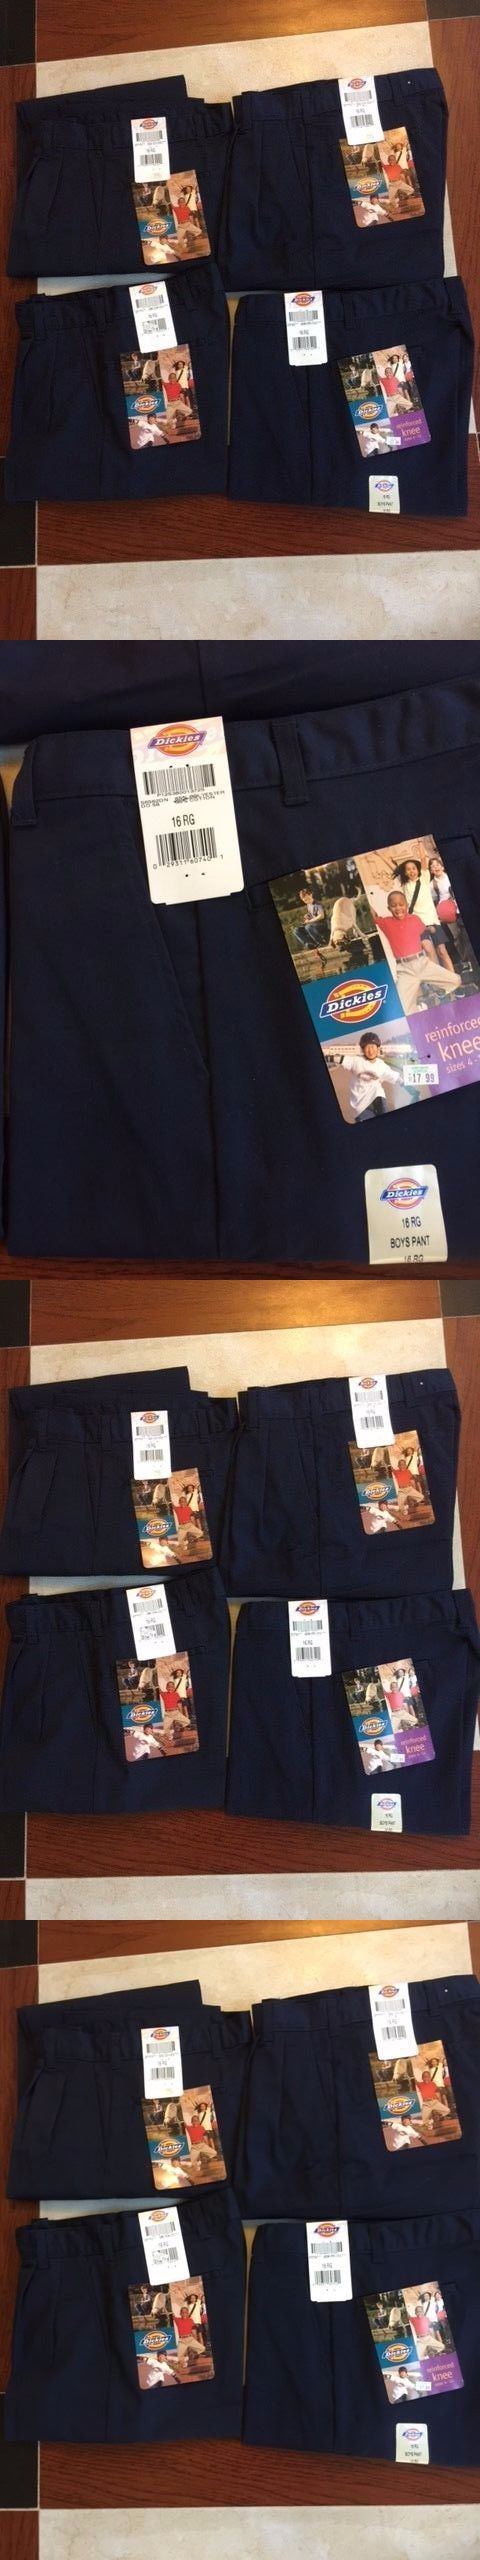 Pants 51920: Lot Of 4 Dickies Pants Boys School Uniform Pants Pleated Front Size 16 Rg -> BUY IT NOW ONLY: $32 on eBay!